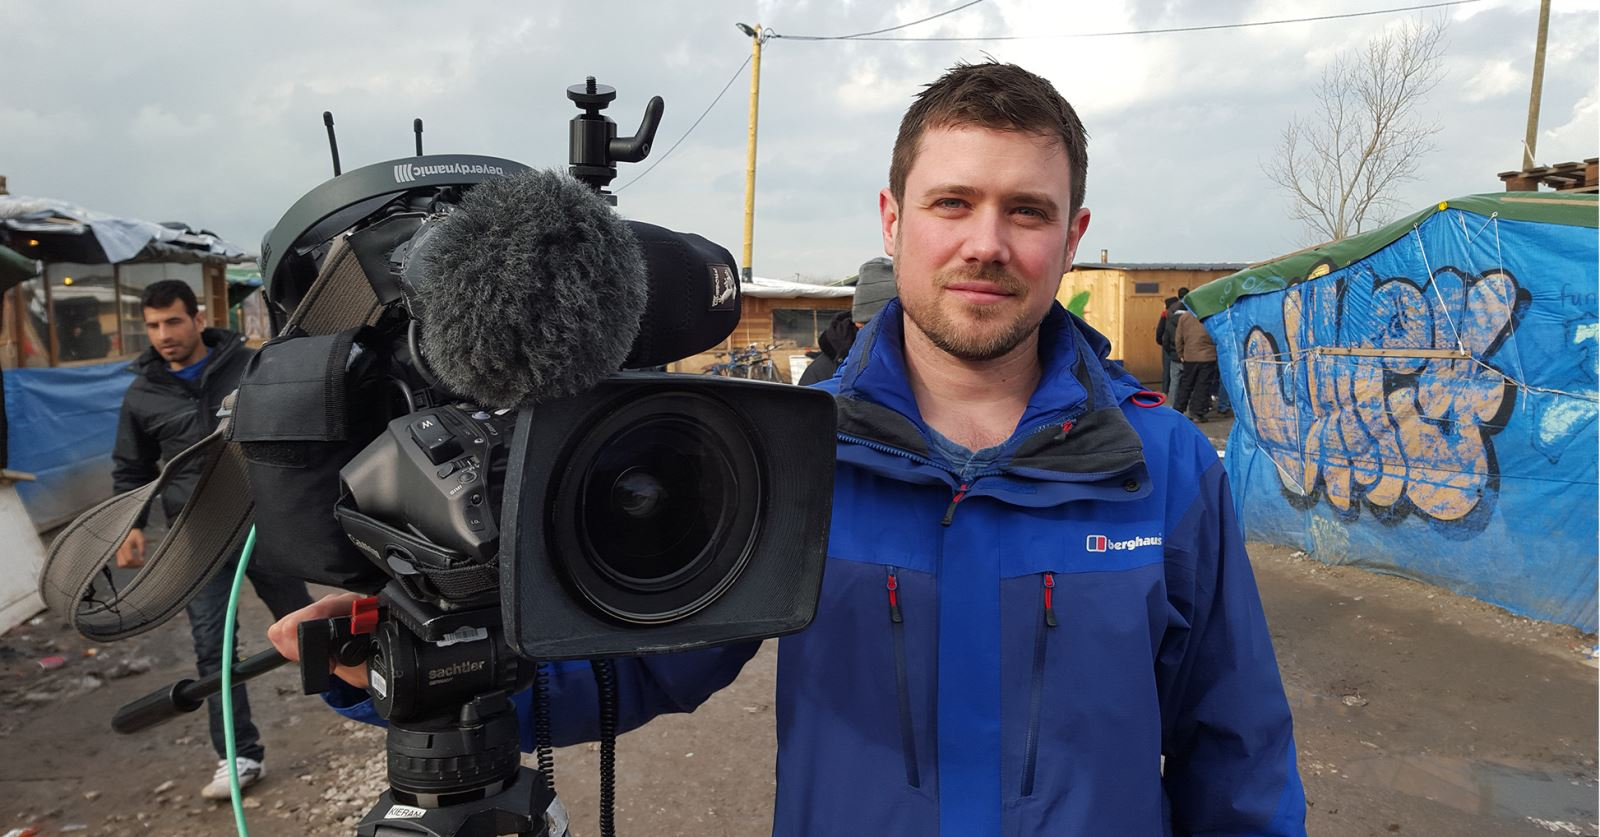 Welcome to new GTC member Kieran Tynan - here covering the migrant story in the Calais 'jungle' for BBC World Service